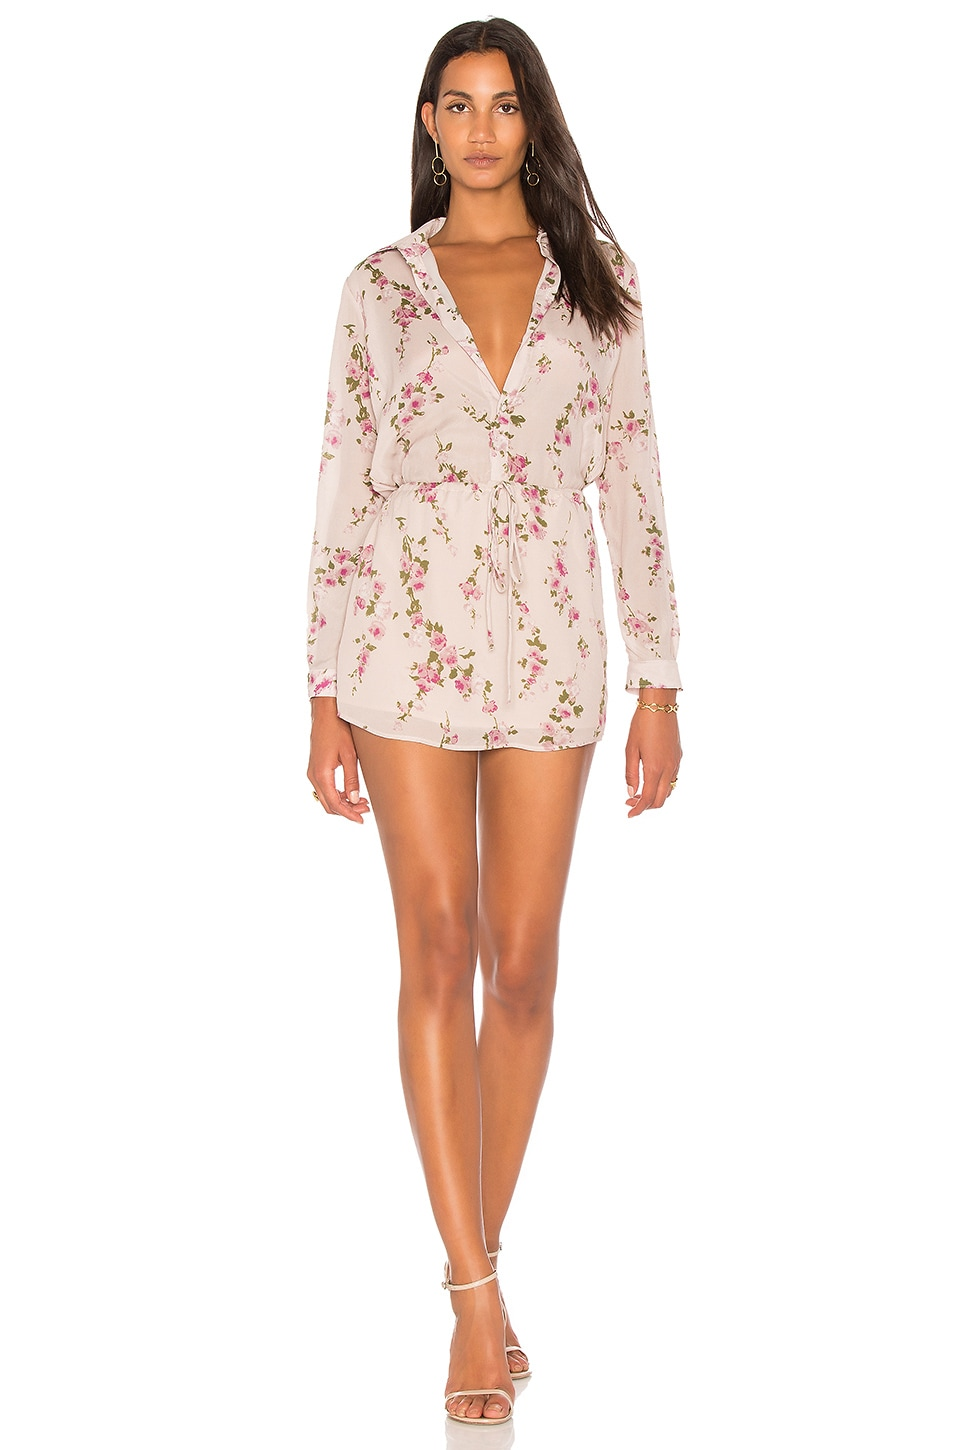 Valentina Floral Shirt Dress by Karina Grimaldi